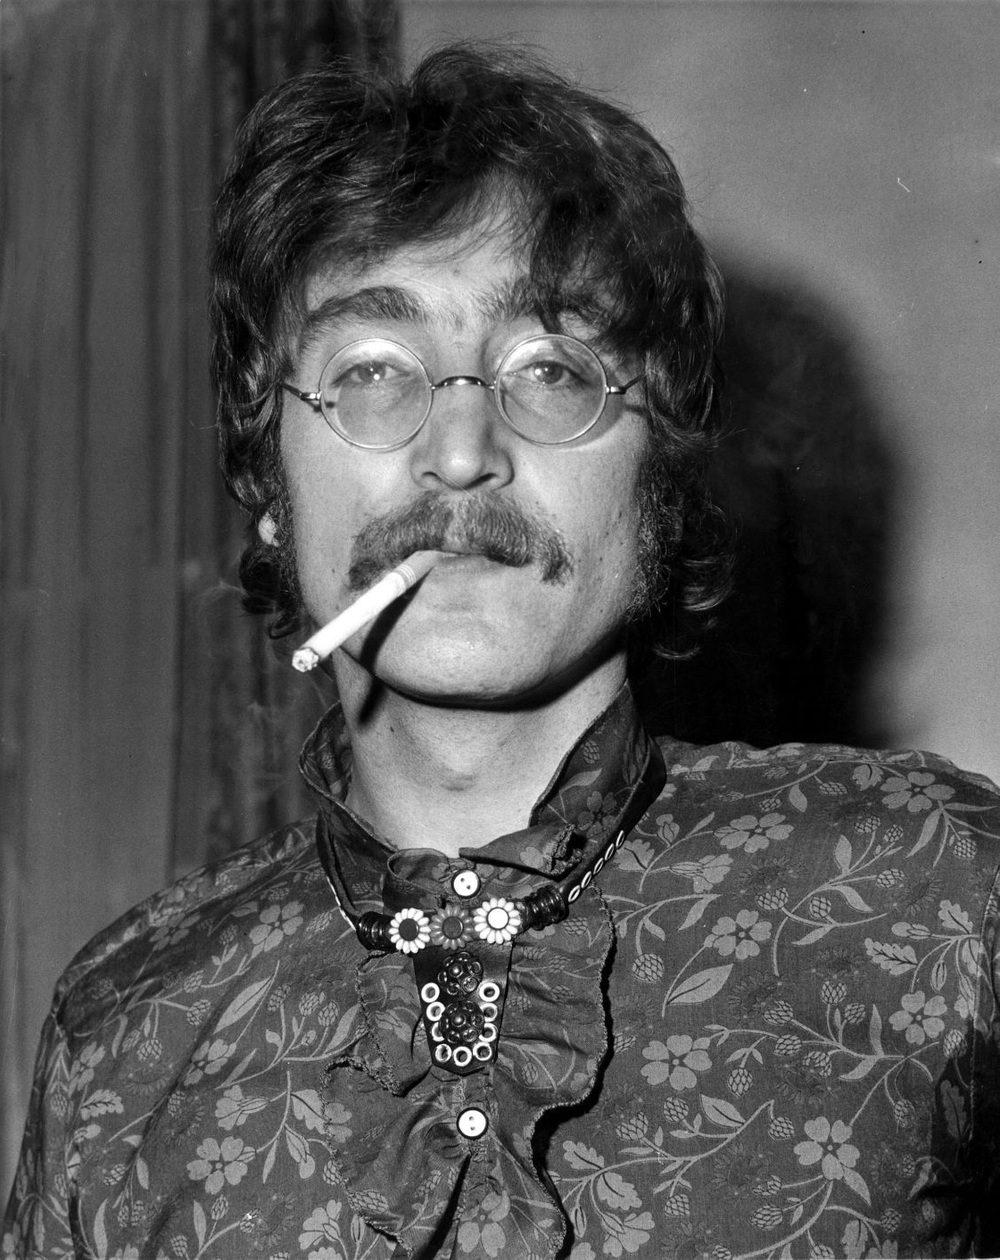 John Lennon promoting Sgt. Pepper, May 19th, 1967.